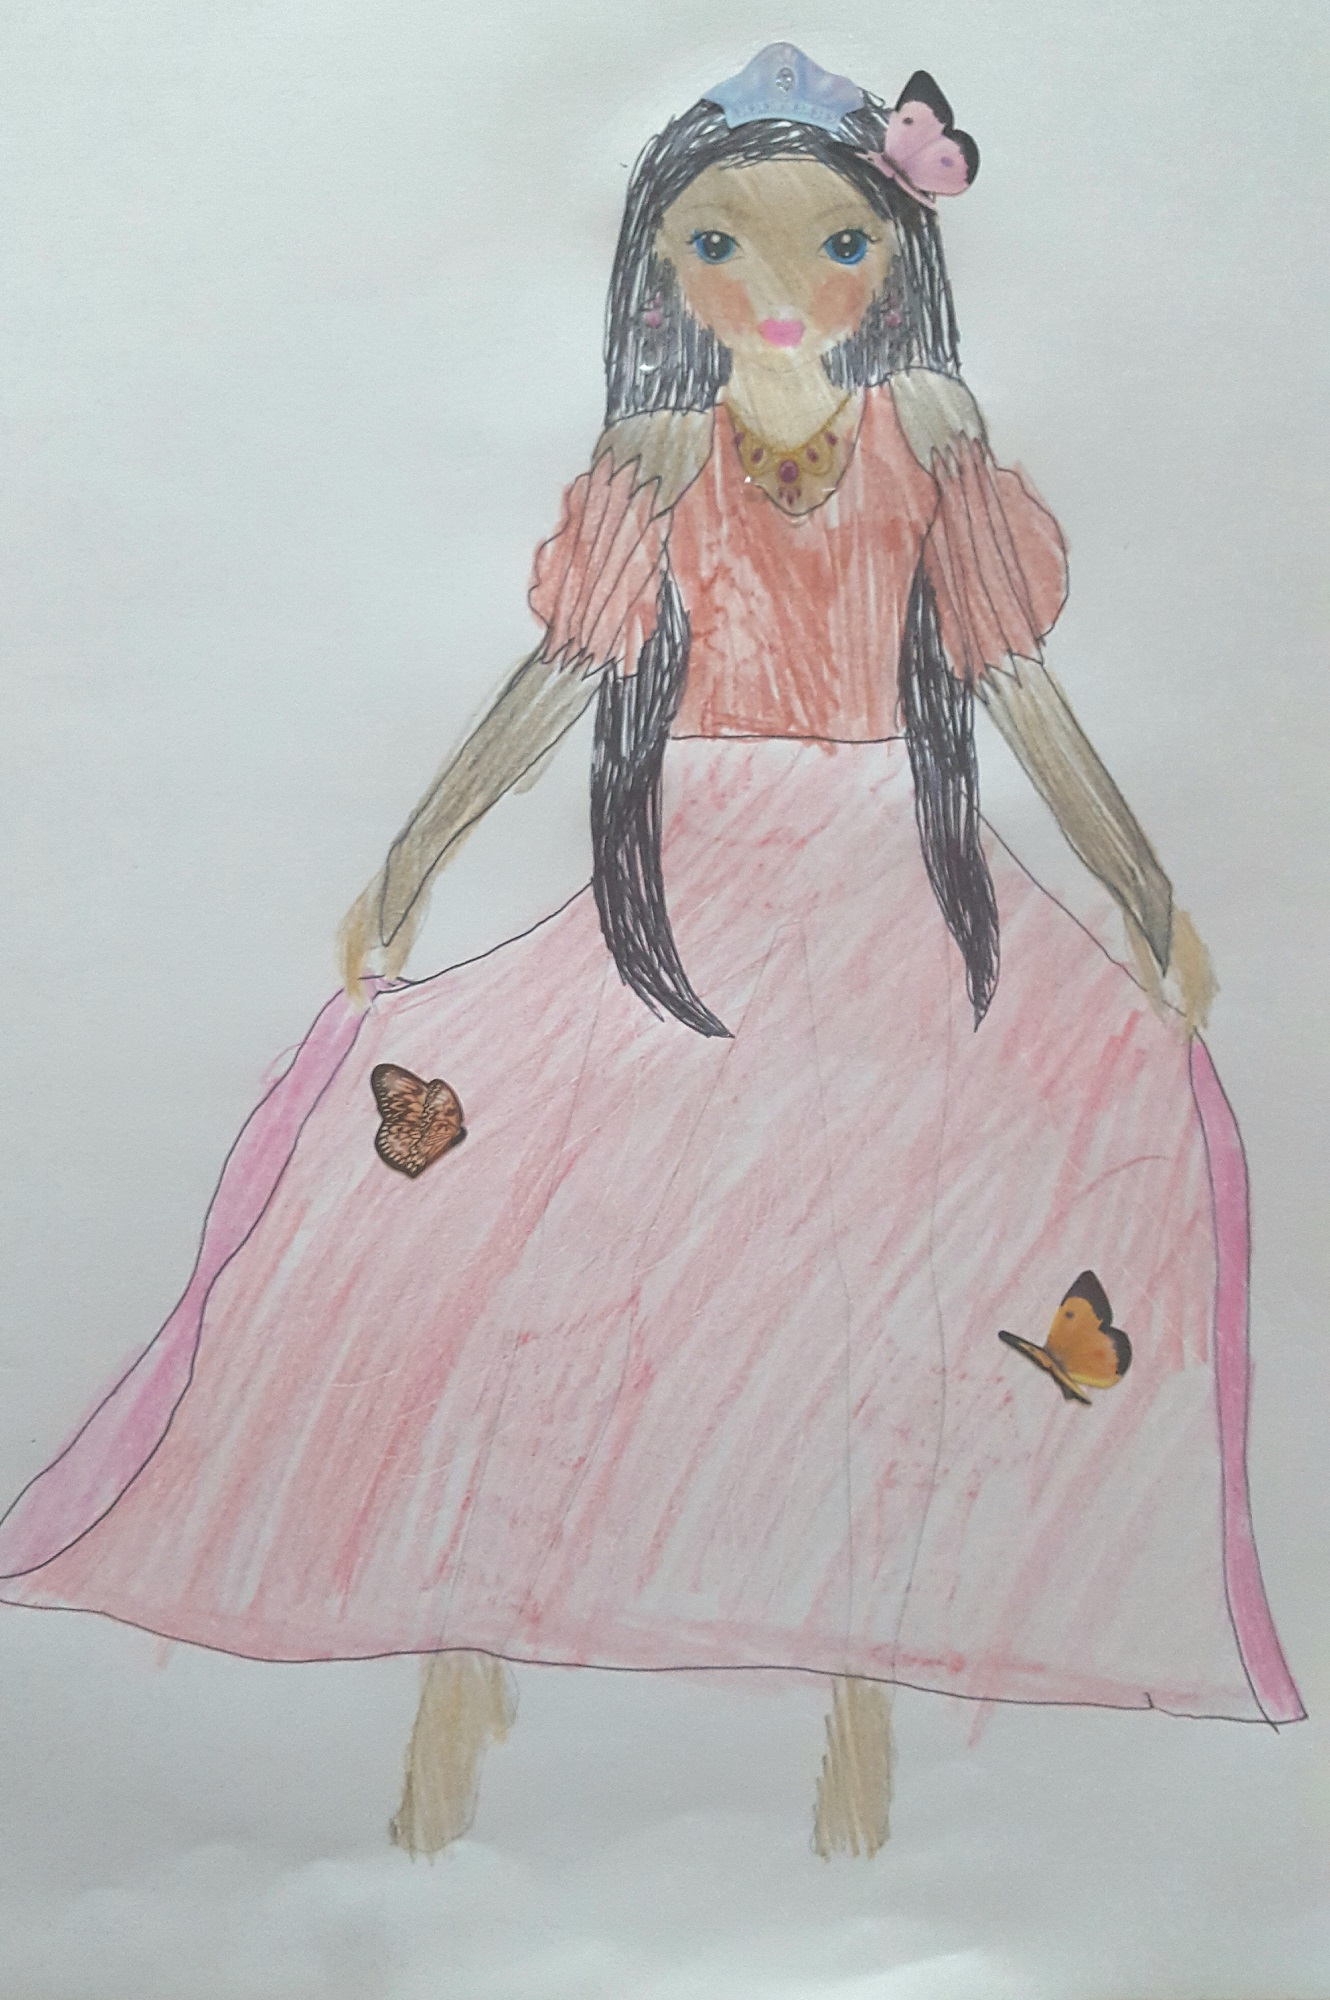 Ariana F., 9years, from australia